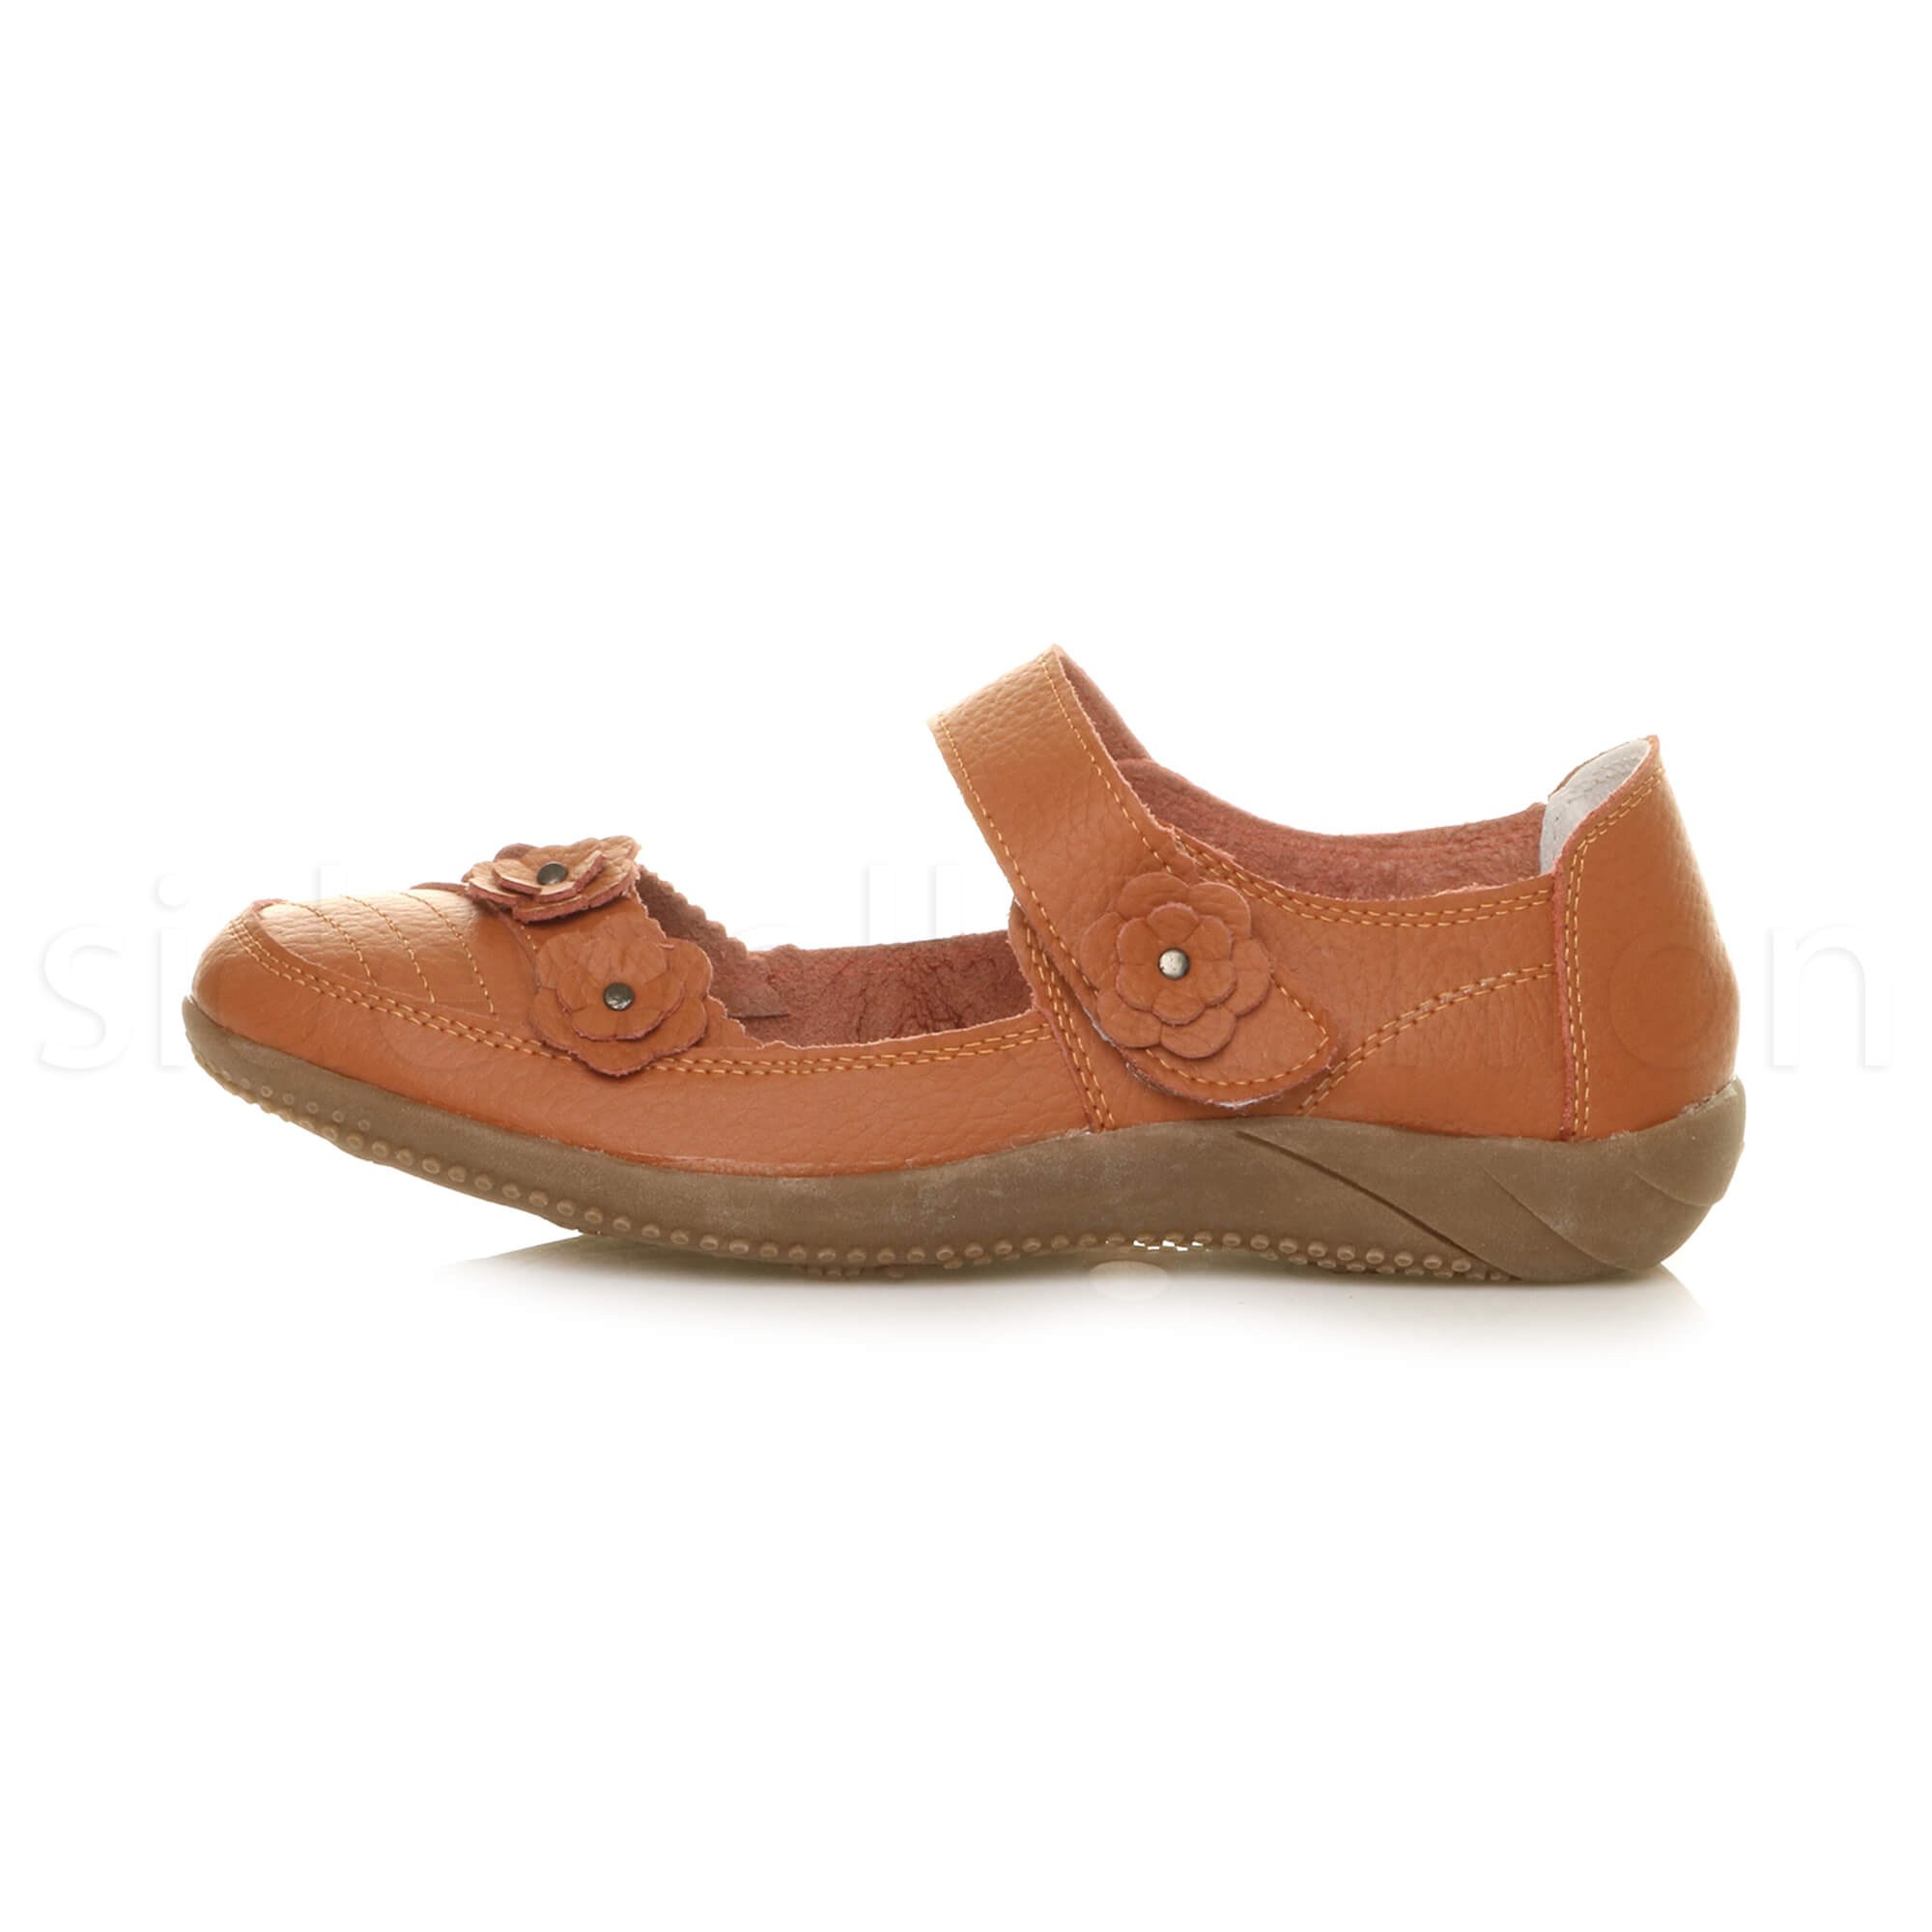 Womens-ladies-leather-comfort-walking-casual-sandals-mary-jane-strap-shoes-size thumbnail 13